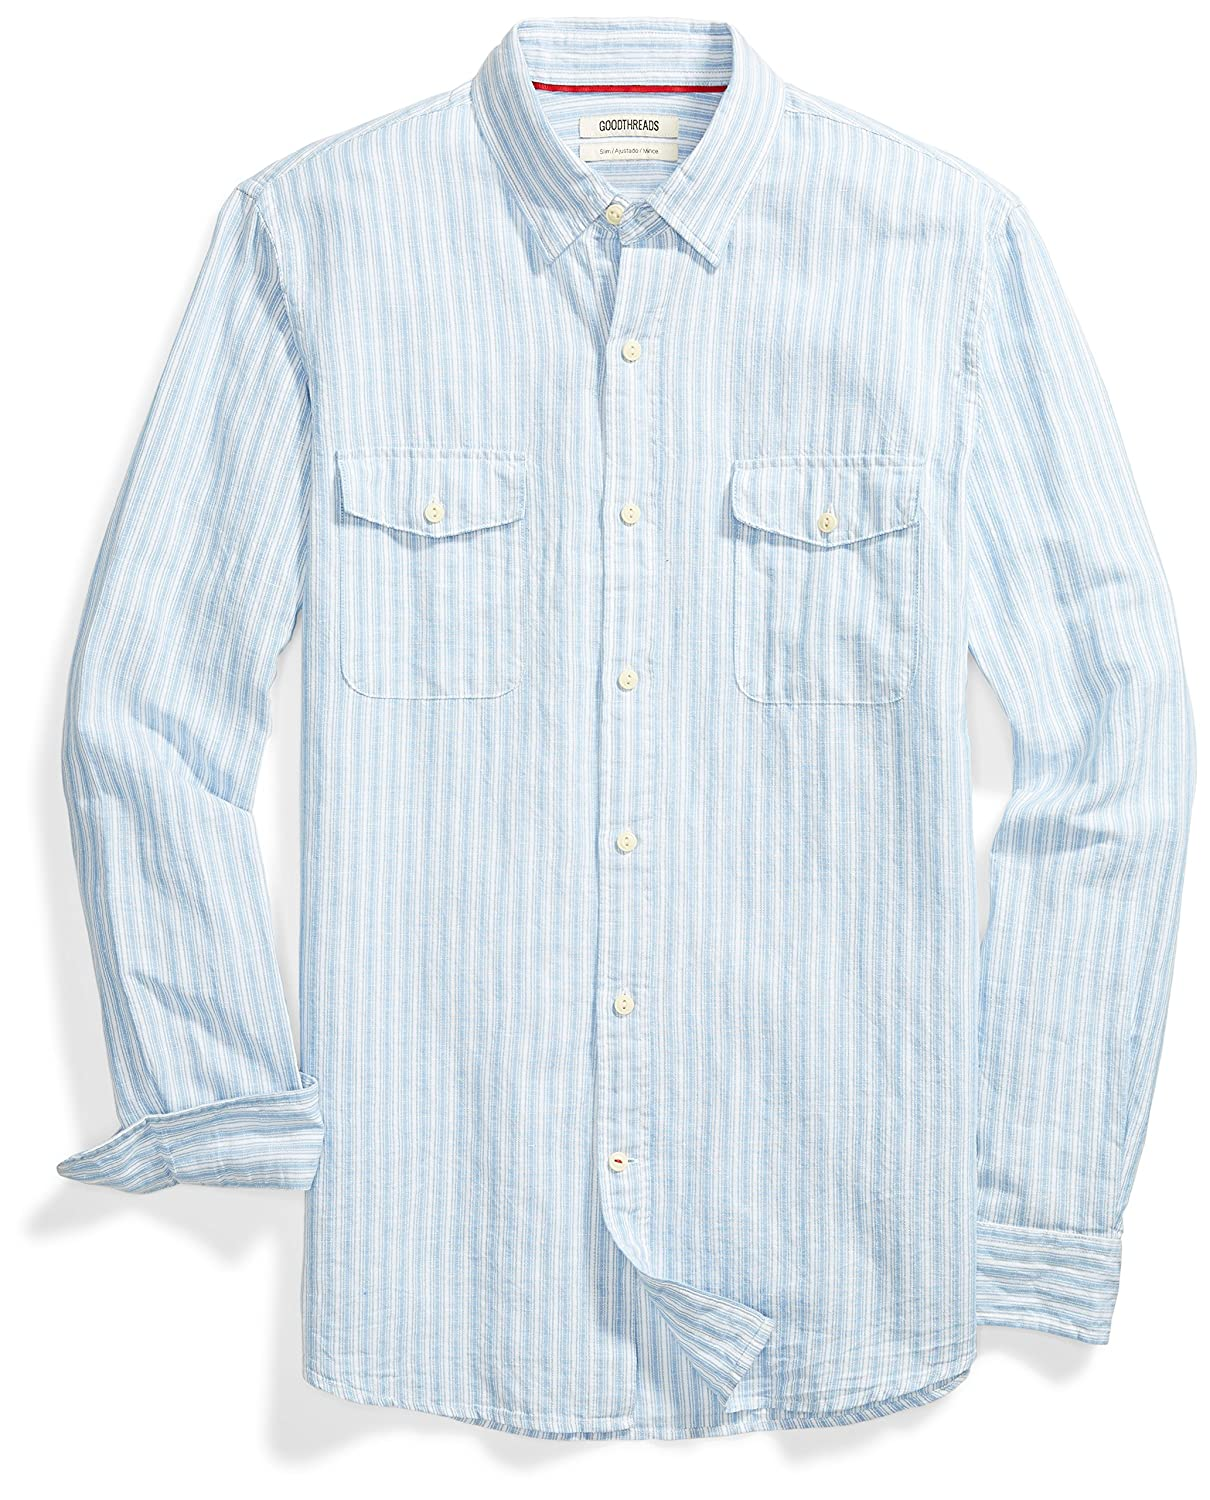 Mens Vintage Shirts – Casual, Dress, T-shirts, Polos Linen Amazon Brand - Goodthreads Mens Slim-Fit Long-Sleeve Linen and Cotton Blend Shirt $30.00 AT vintagedancer.com